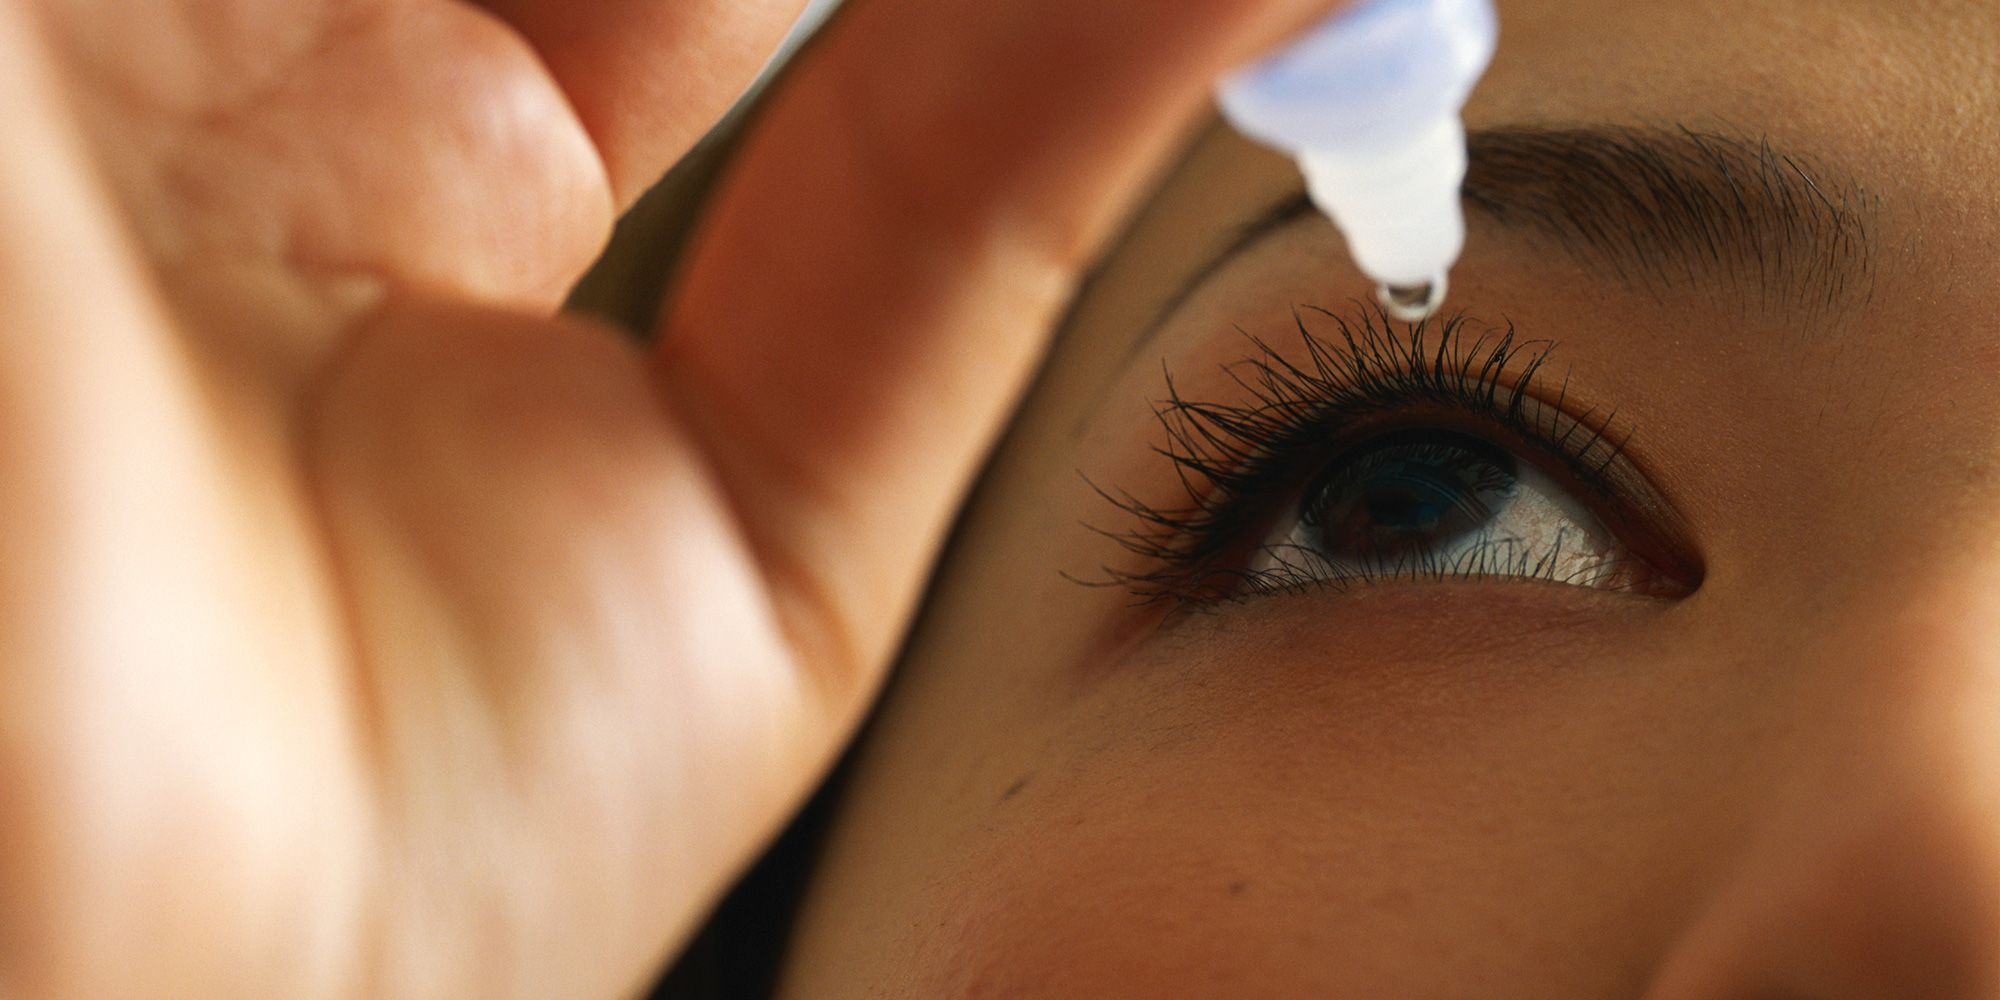 5 Eye Problems To Never Ignore - Eye Floaters, Freckles, More